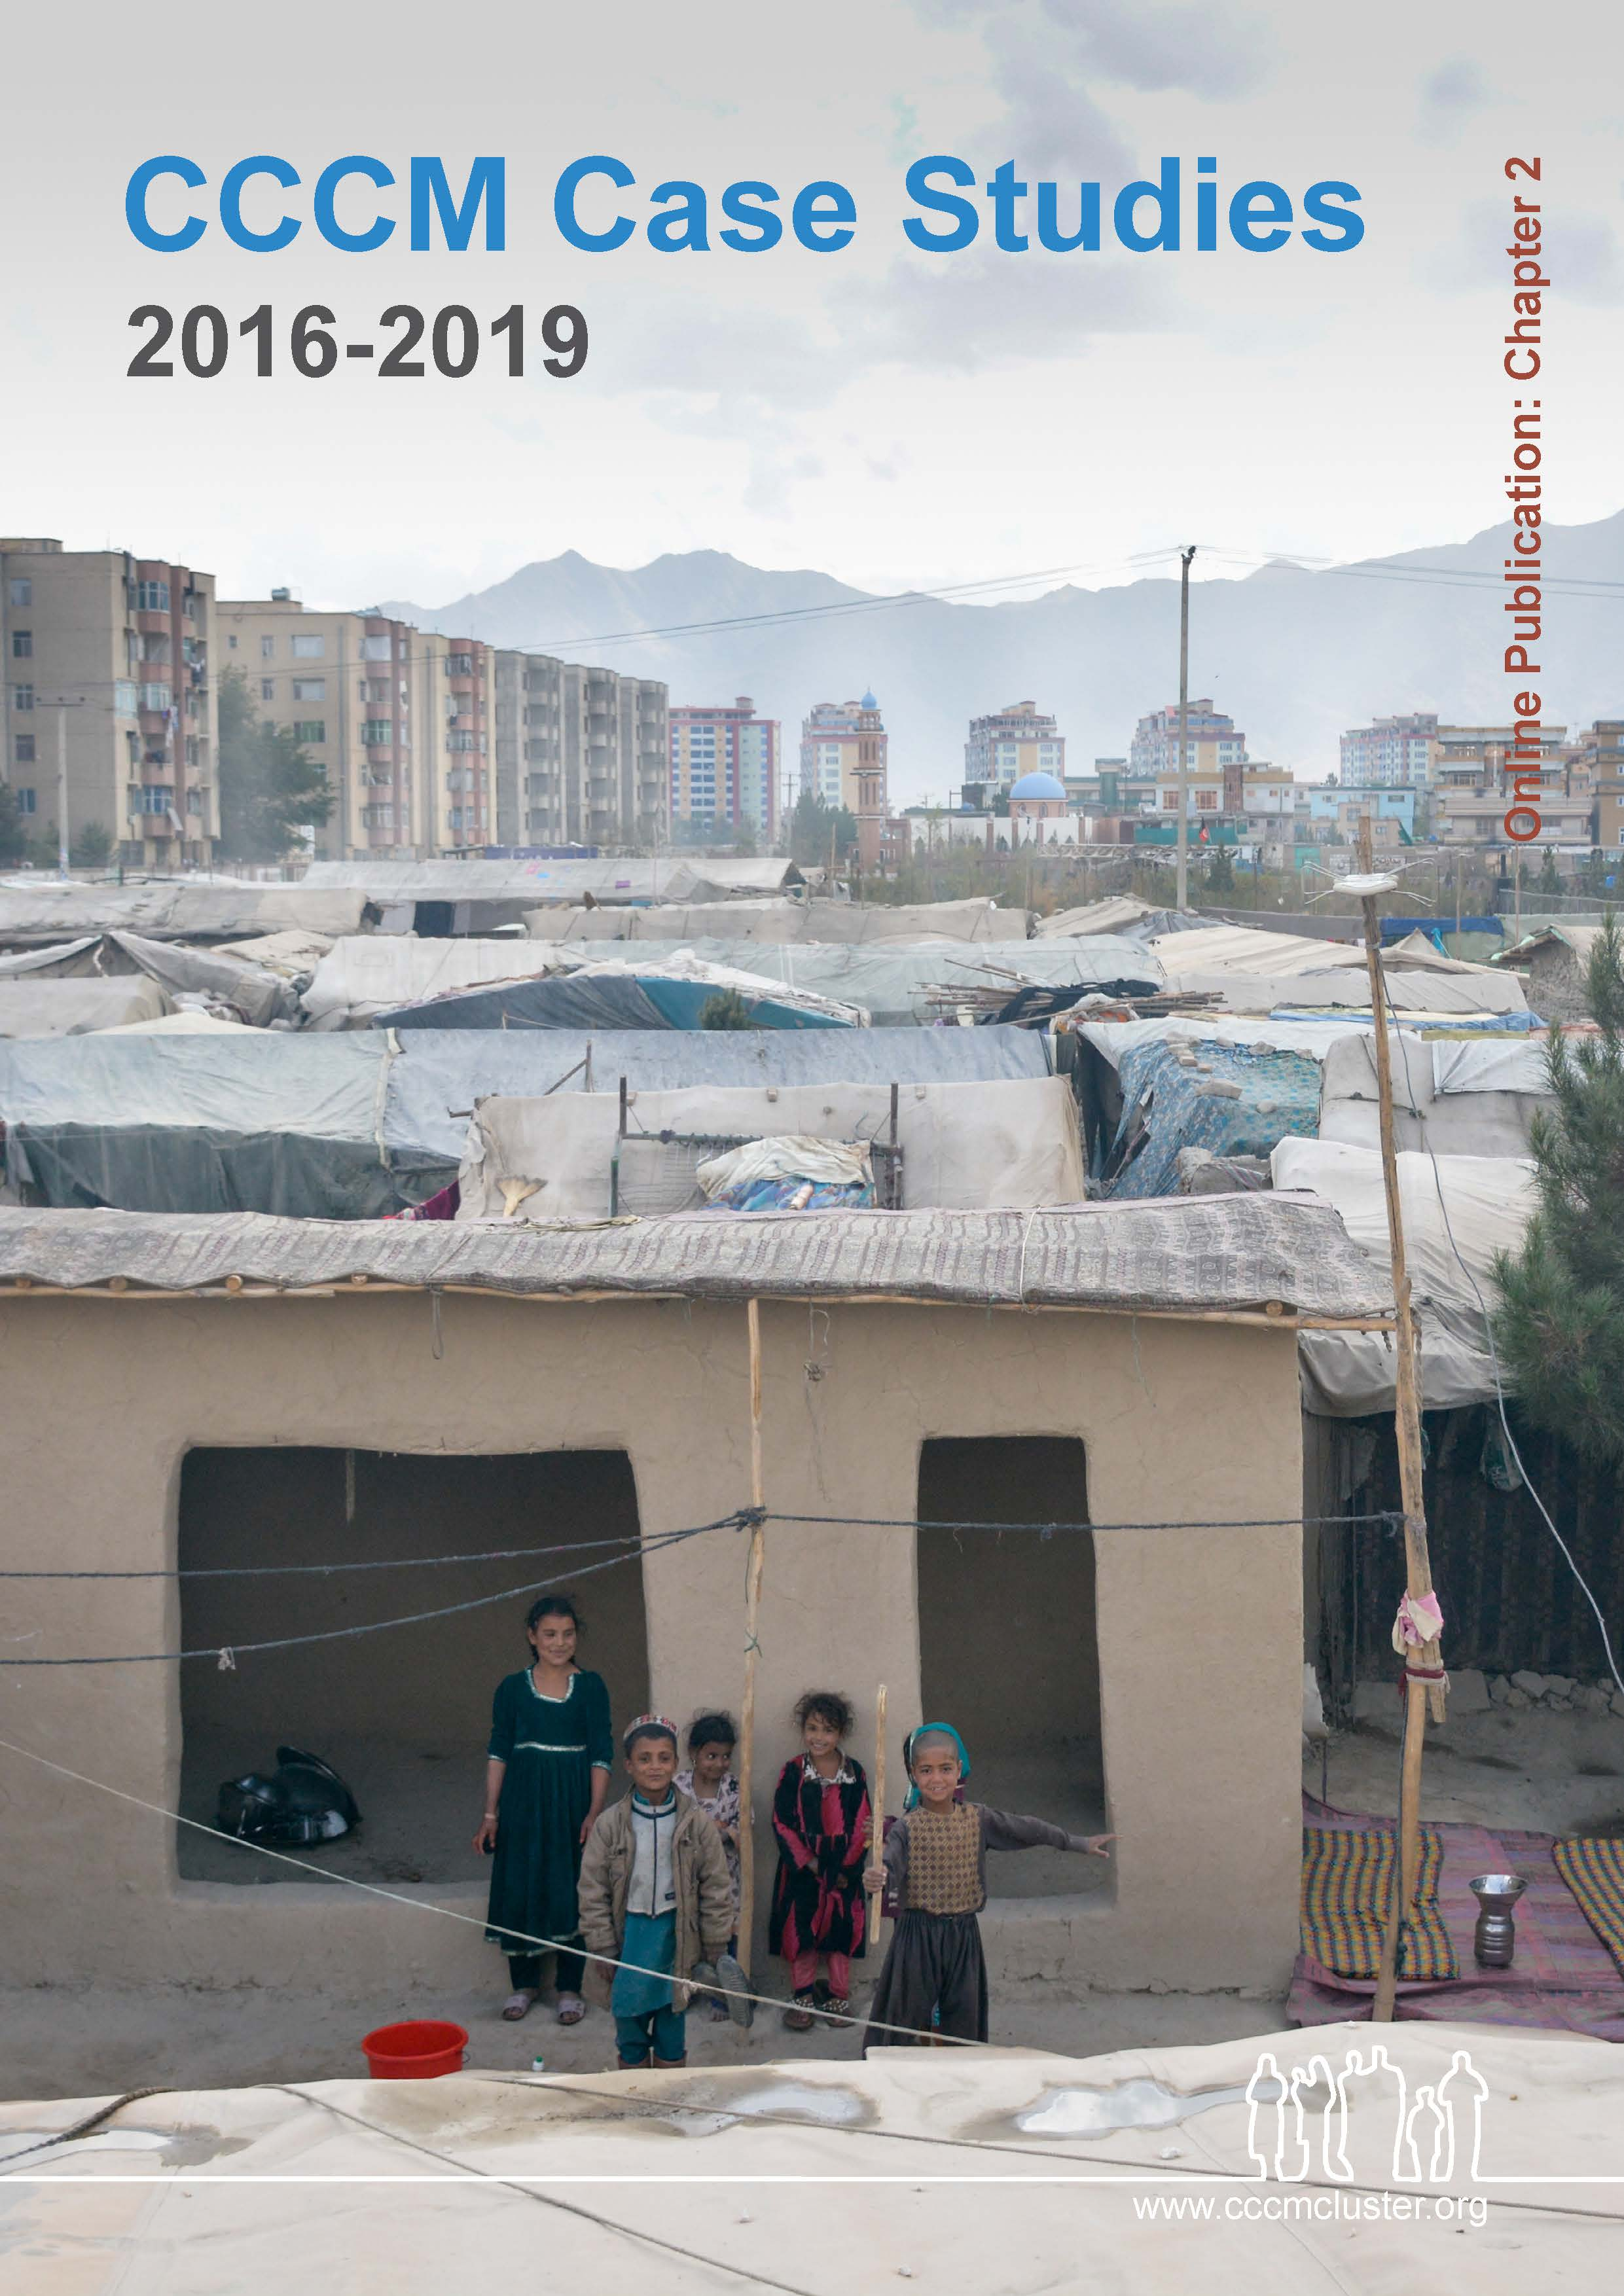 CCCM_Case Studies 2016 - 2019 online publication chapter 2 - six children stand outside their home in Kabul smiling and playing with sticks, in the background is the horizon line of the city then the mountains